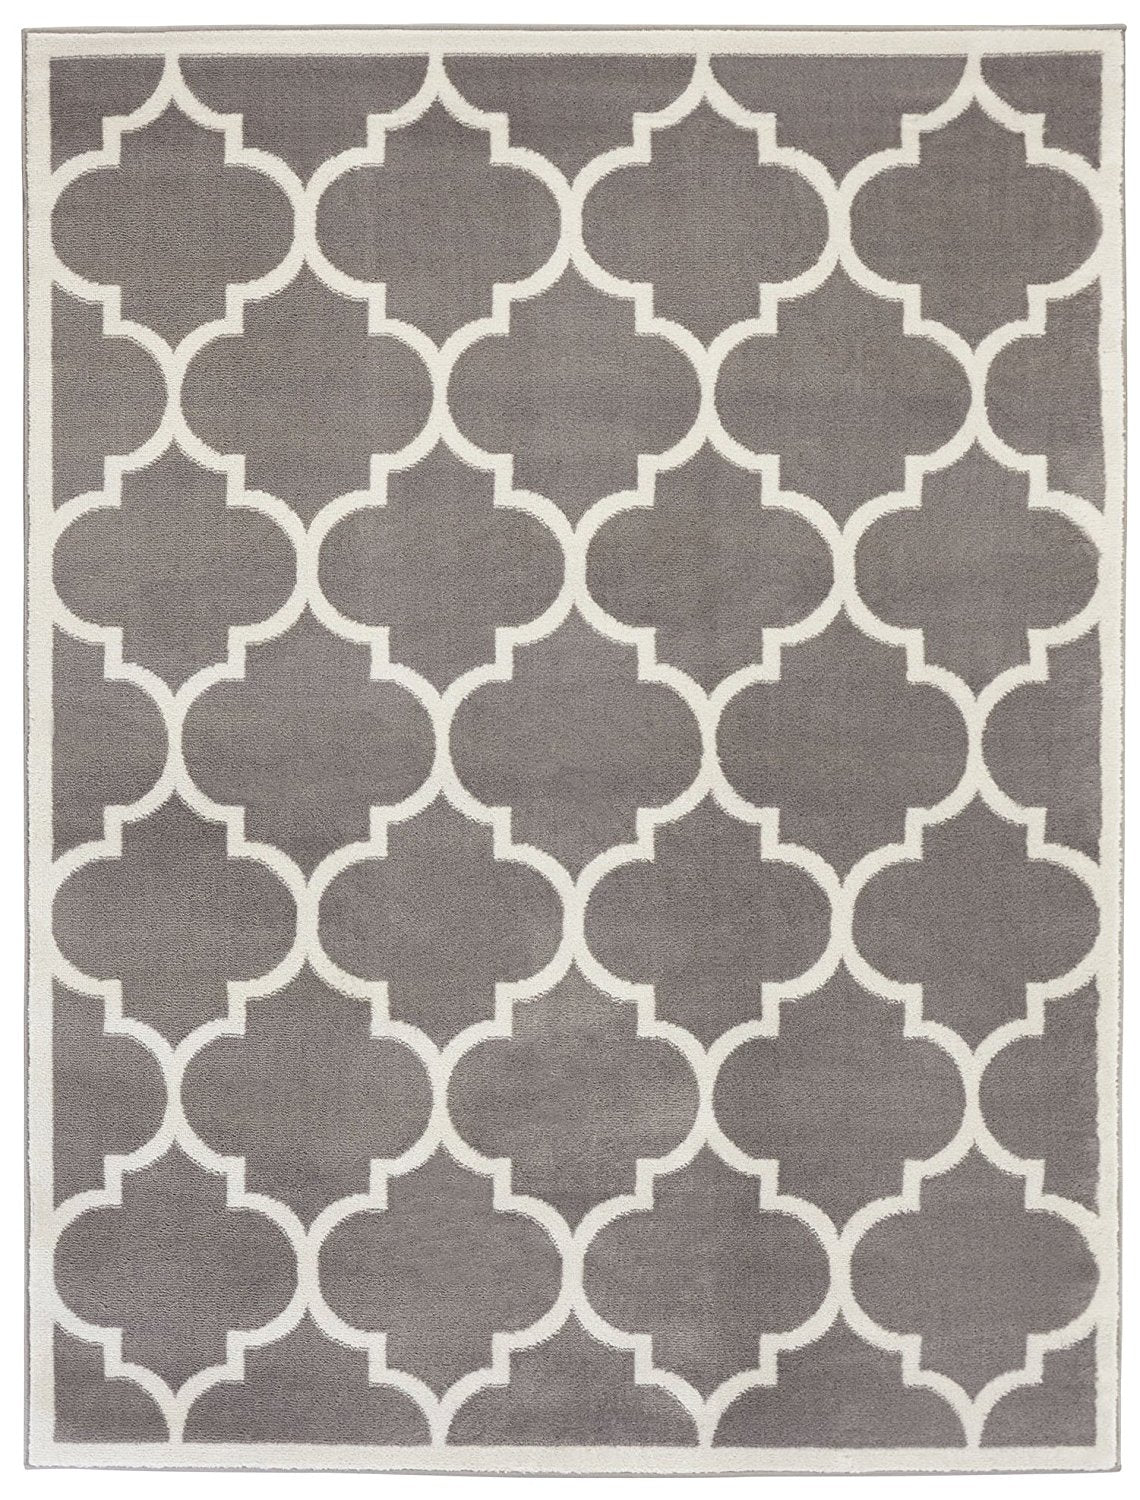 ... Gray/Grey White Area Rug ...